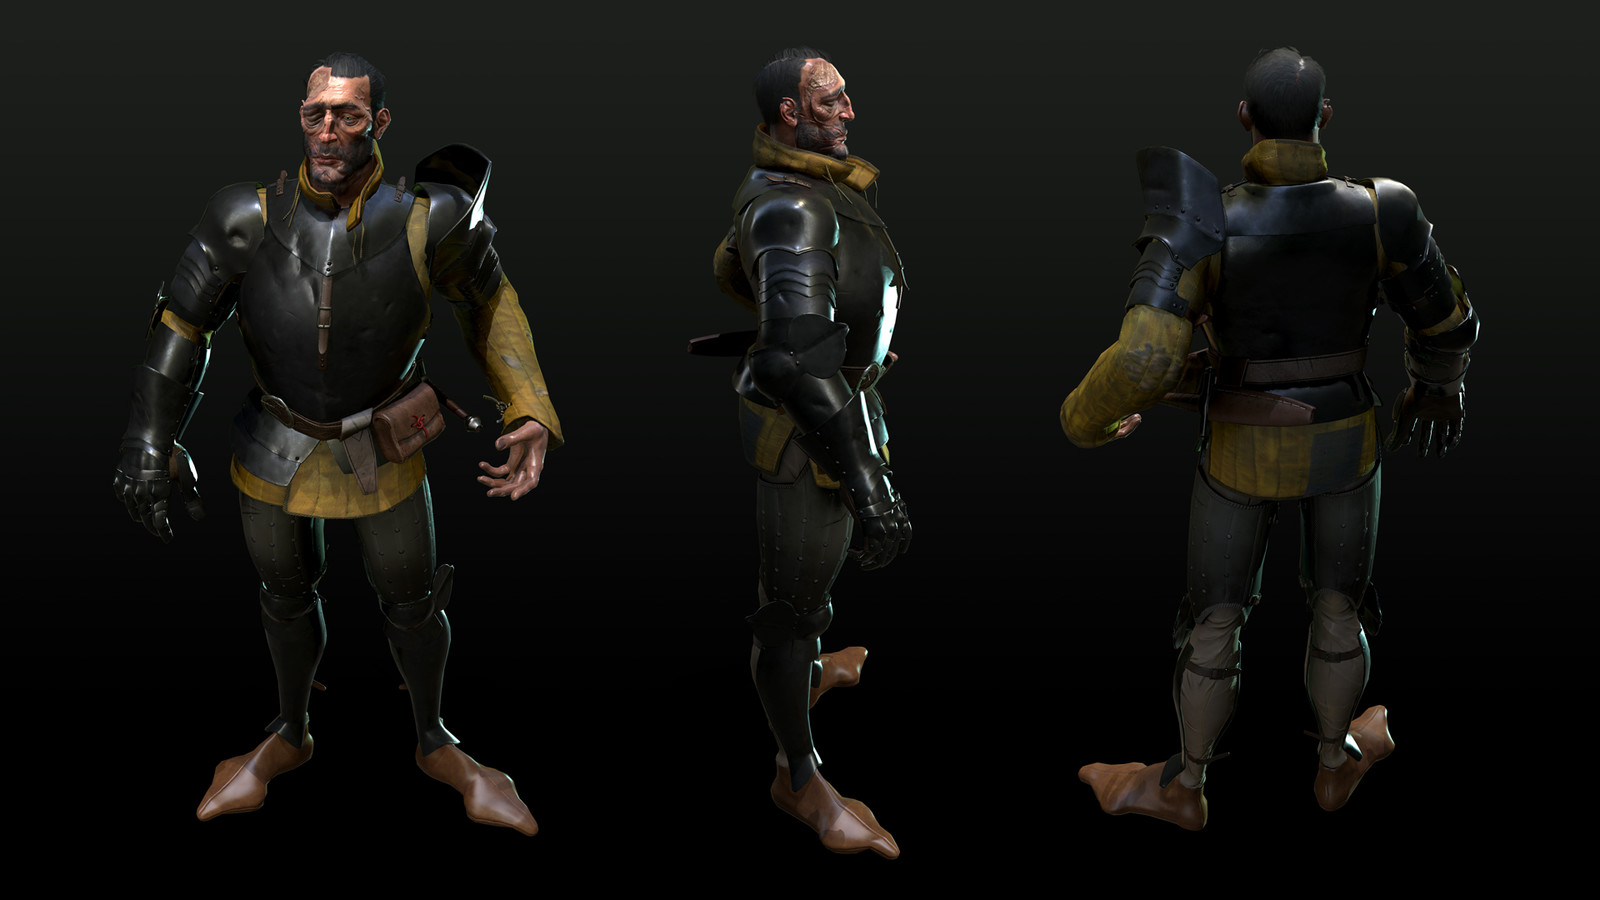 Render of the character